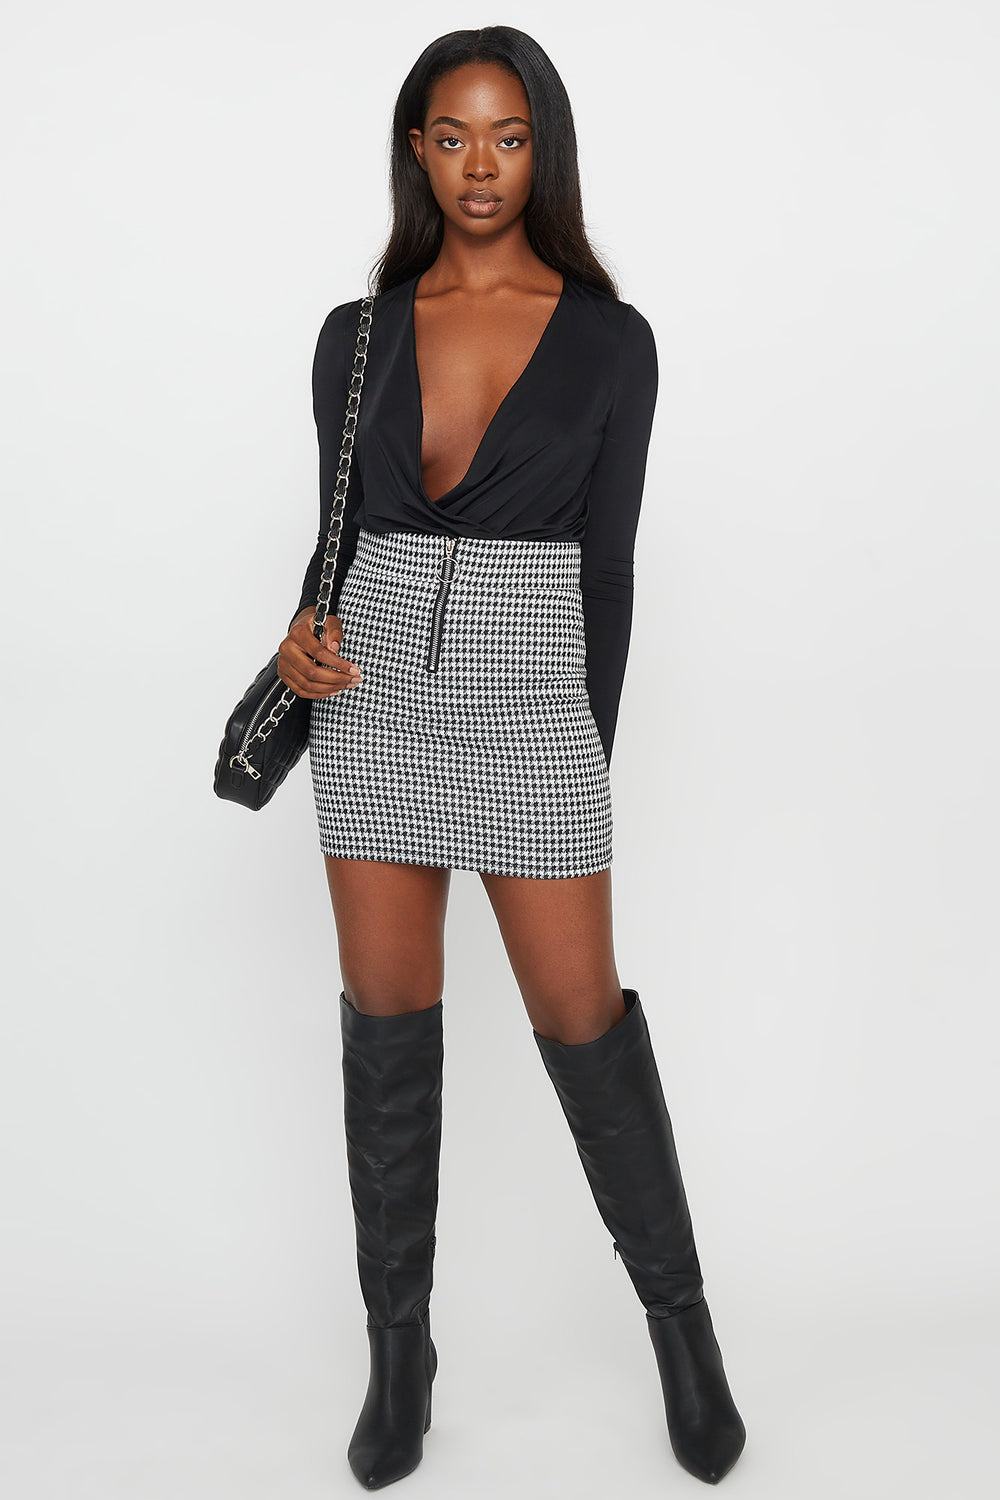 Printed Zip-Up Mini Skirt Black with White